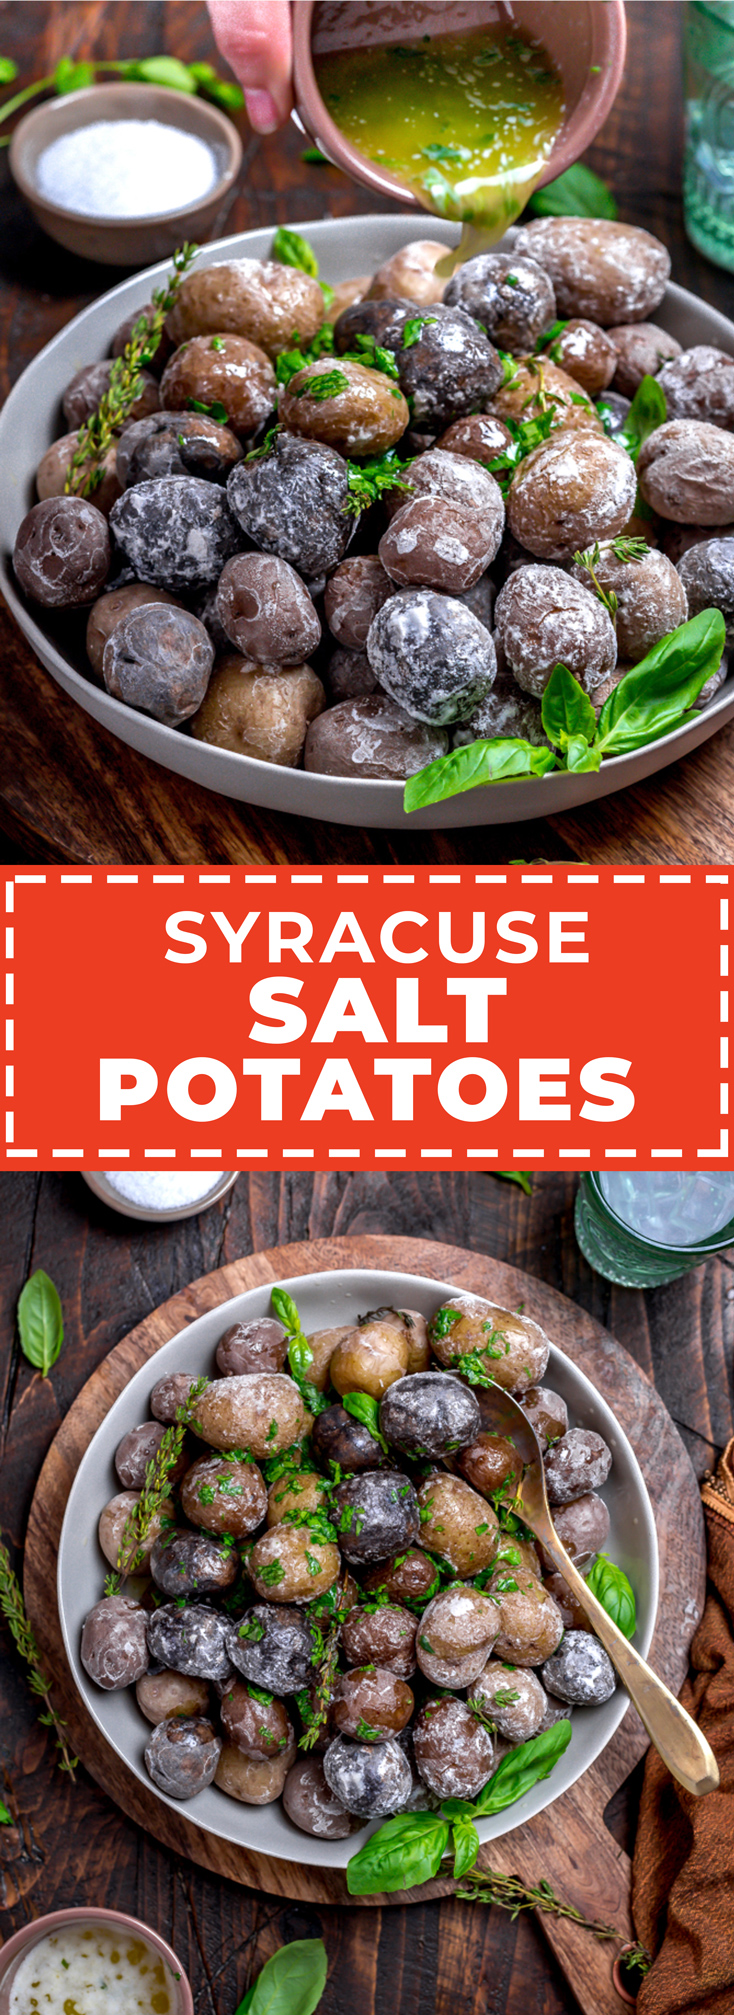 These 4-ingredient Syracuse Salt Potatoes are a classic Central NY dish. Thin salt crusts, almost impossibly tender centers, and a drizzle of melted butter make them just as irresistible as they are easy to prepare. | hostthetoast.com